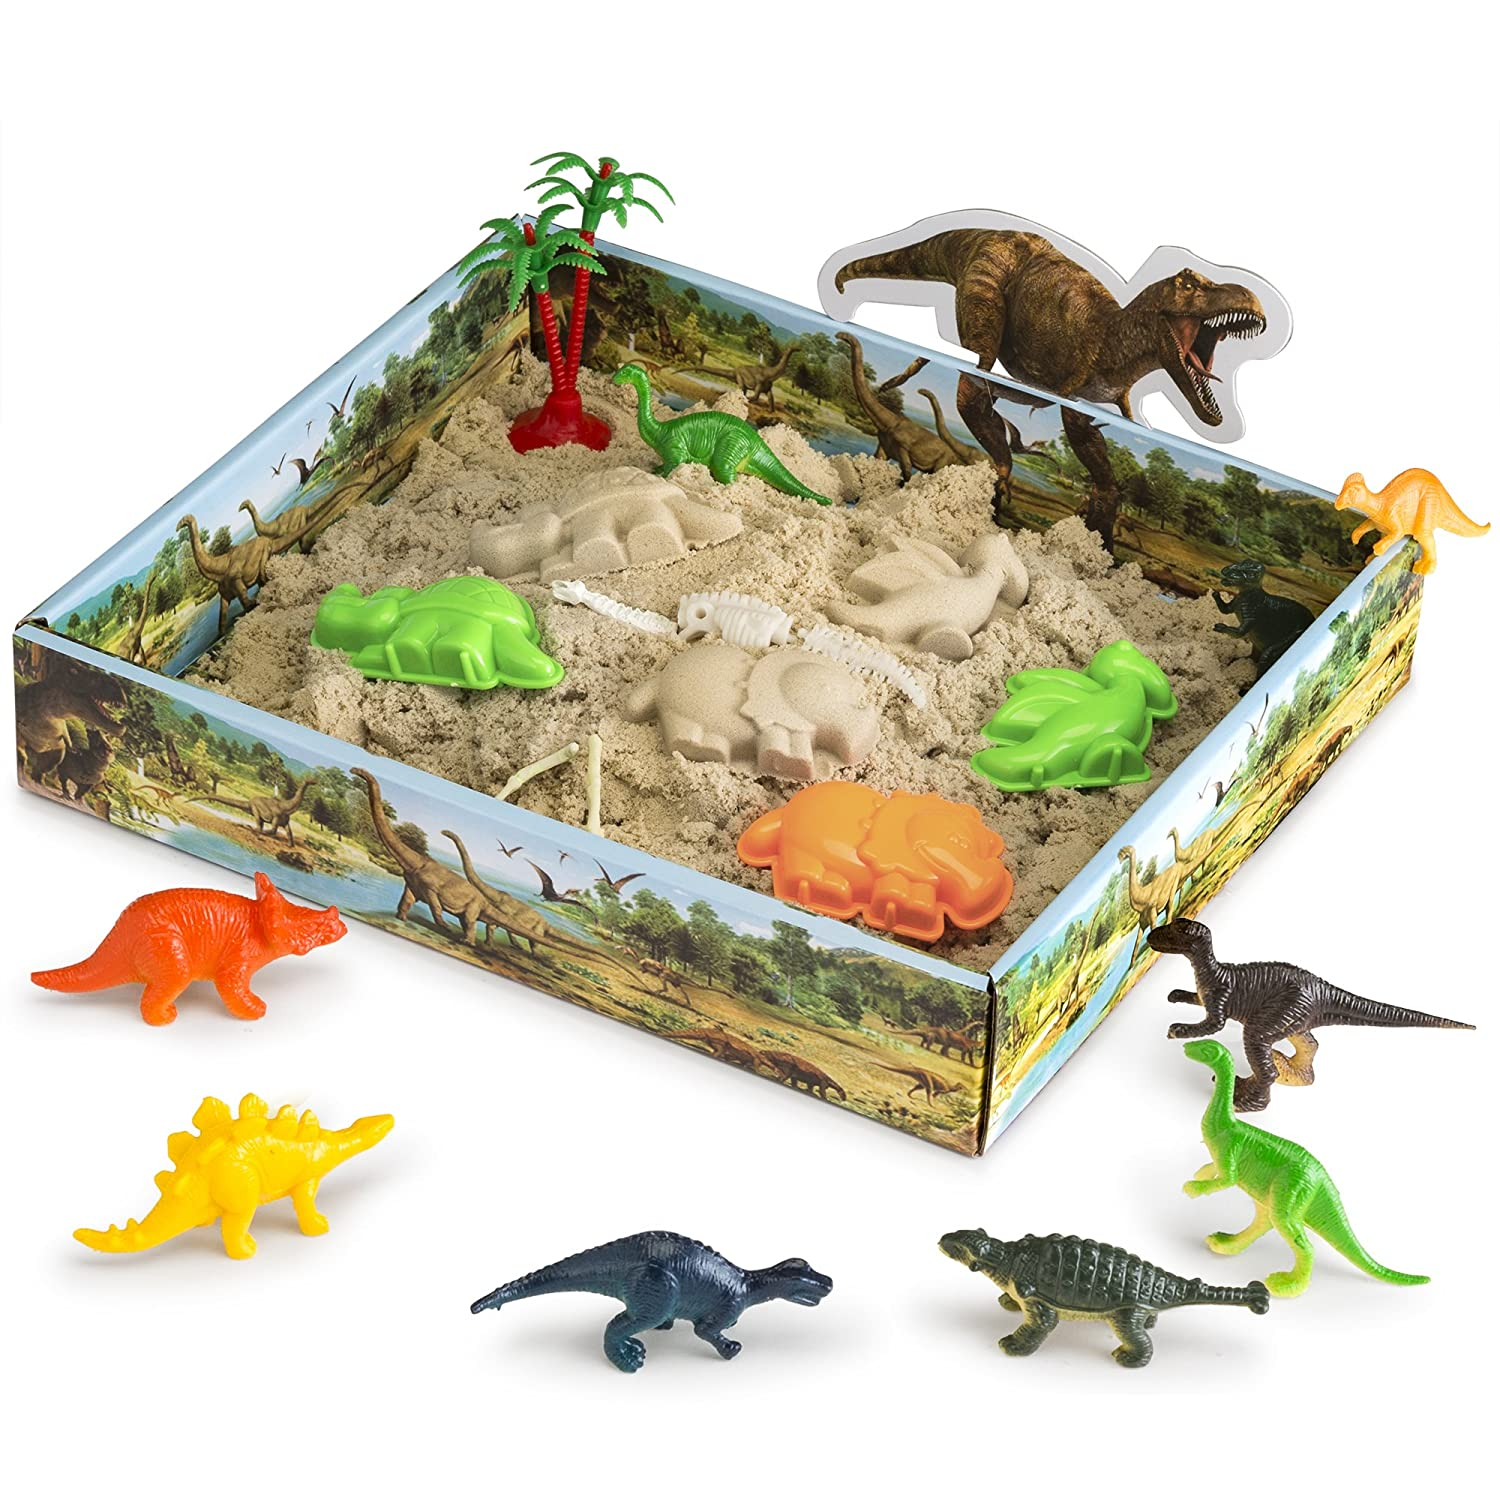 CoolSand 3D Sandbox - Dino Discovery Edition - Set Includes: 1 Pound Moldable Indoor Play Sand, Shaping Molds, Dinosaur Figures and 3D Tray - Featuring Sensory Kinetic Action